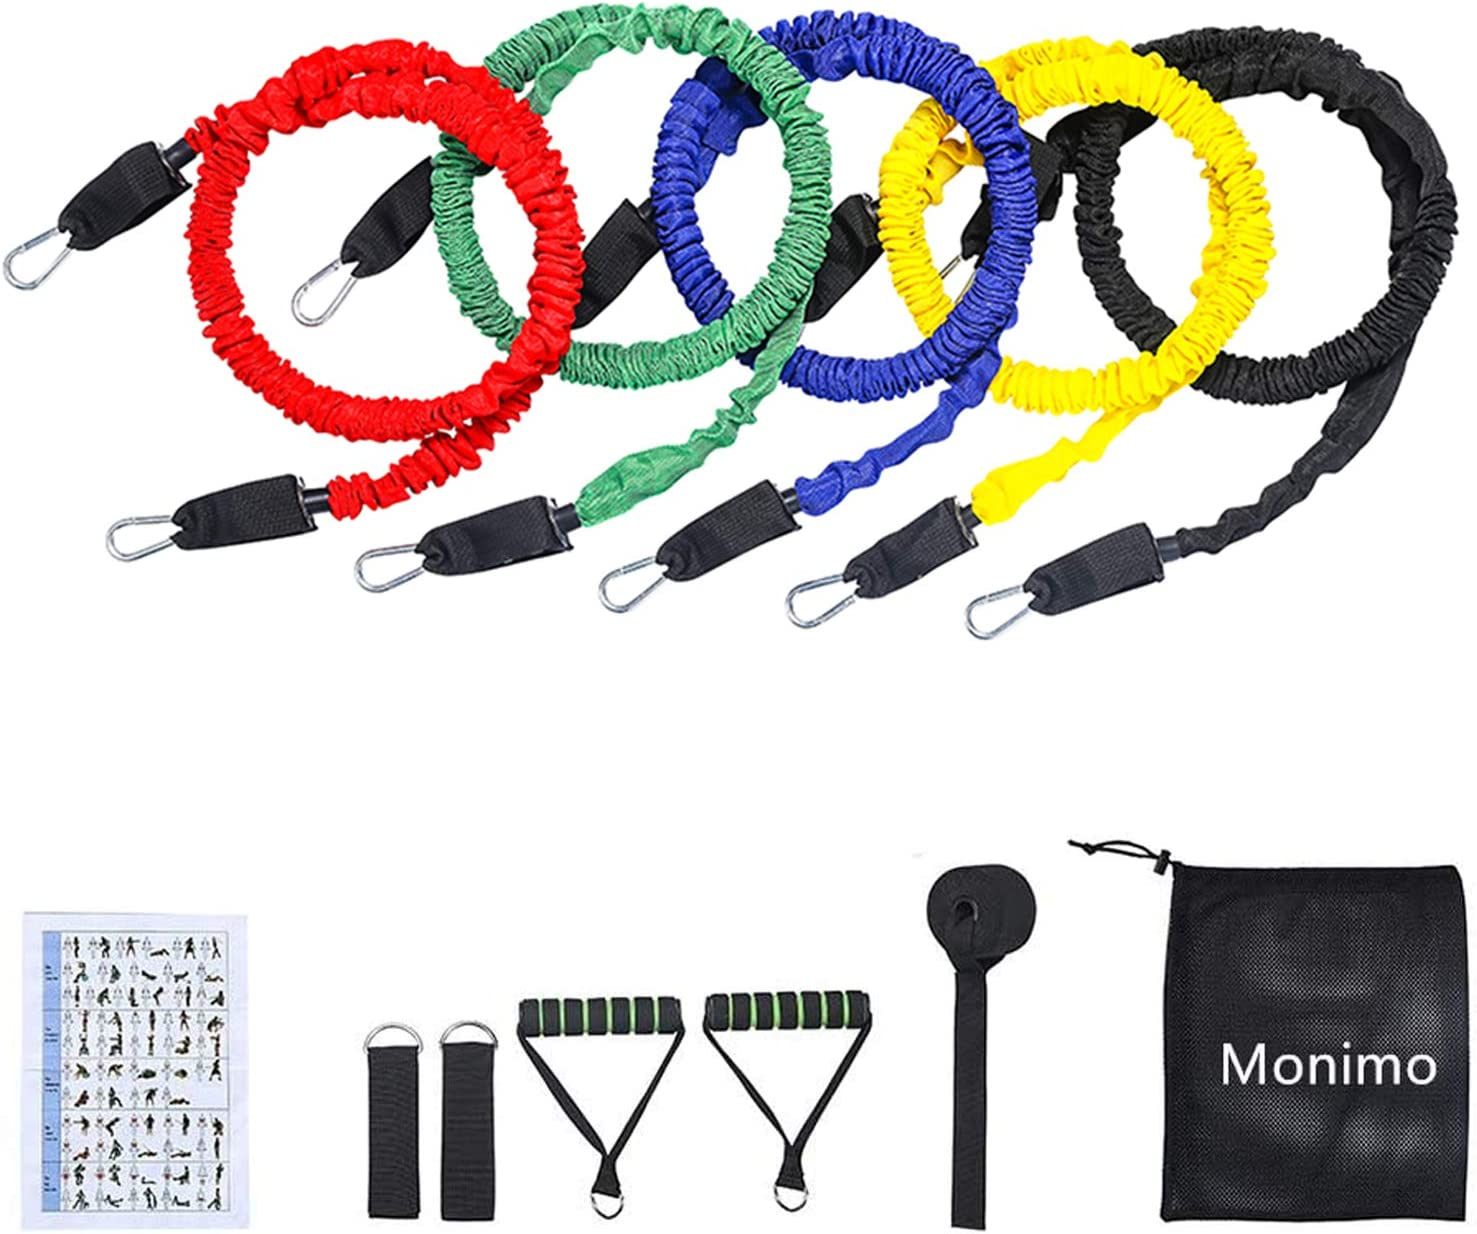 11 piece Resistance band set Brand New Fast shipping from the USA